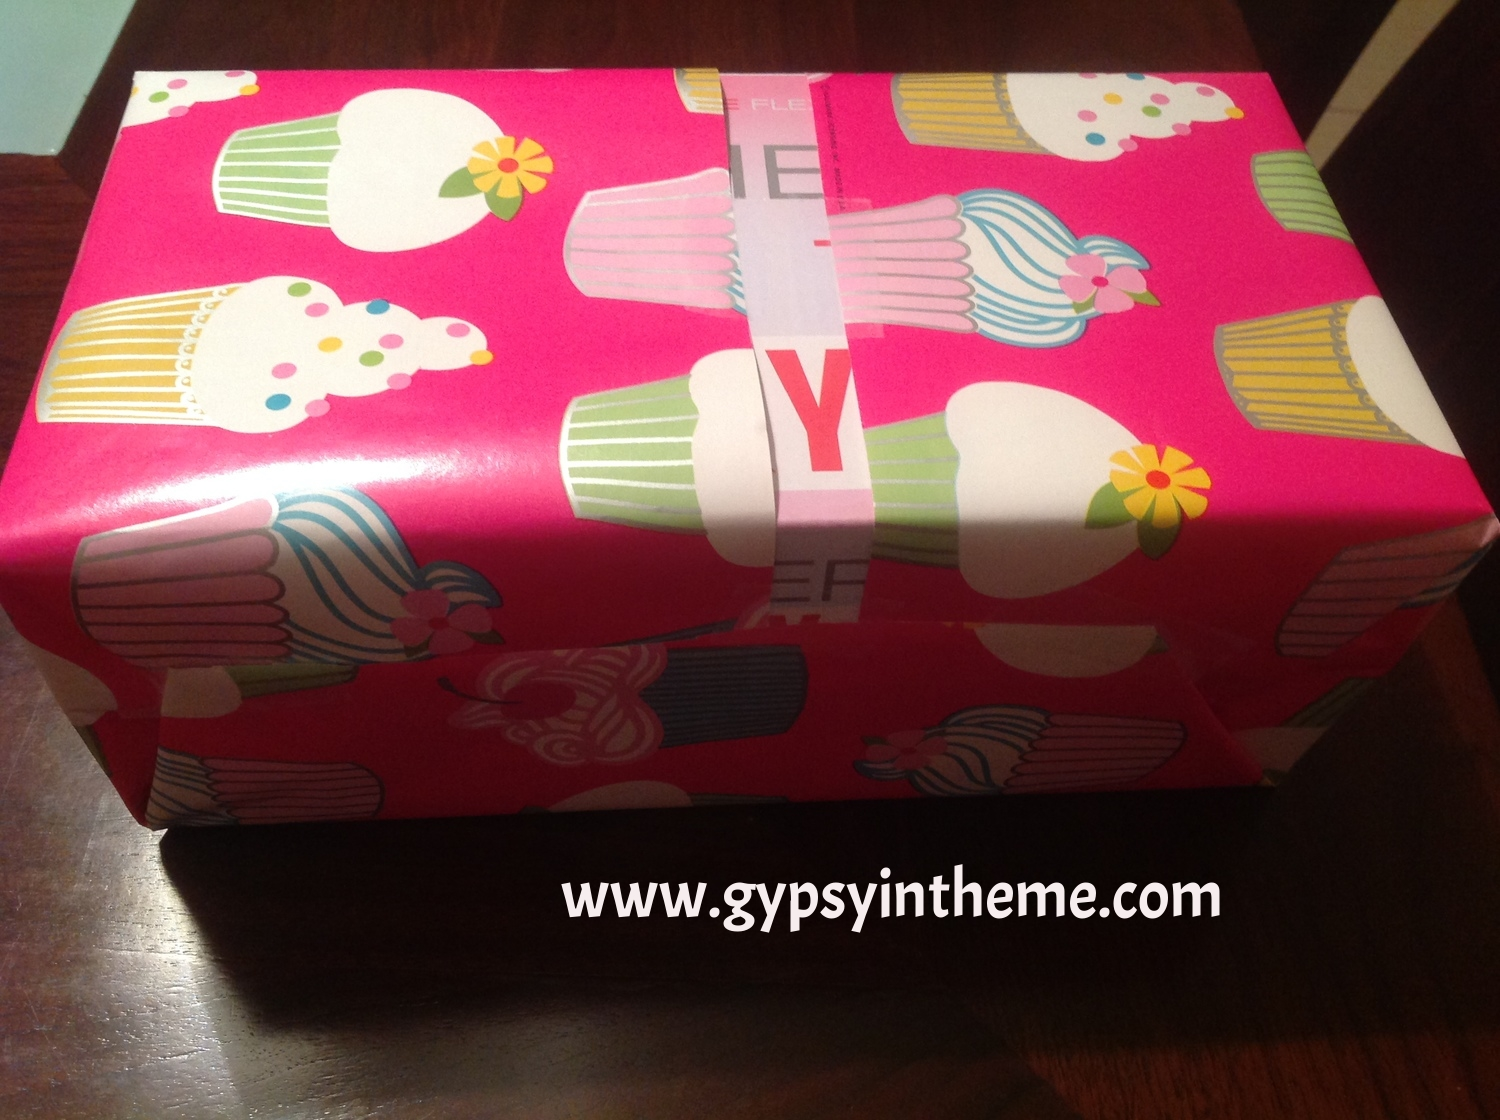 Yes, that is a Sketcher's shoe box peeking out where I ran out of paper.  But in my mind, the box colours complement the wrapping paper quite nicely.